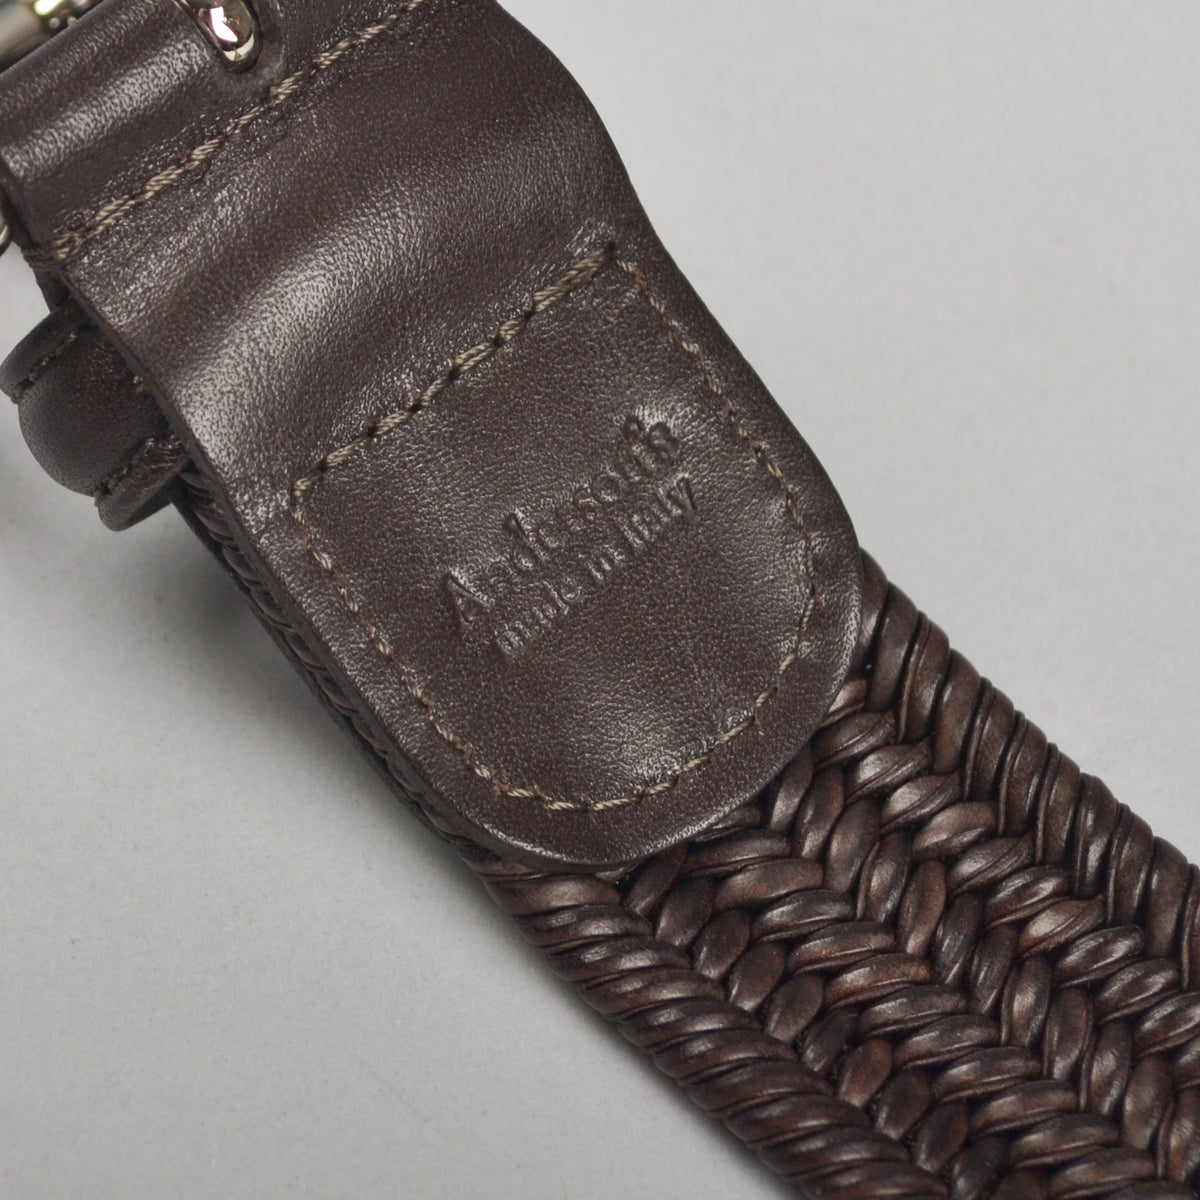 ANDERSON'S - WOVEN LEATHER BELT - DARK BROWN